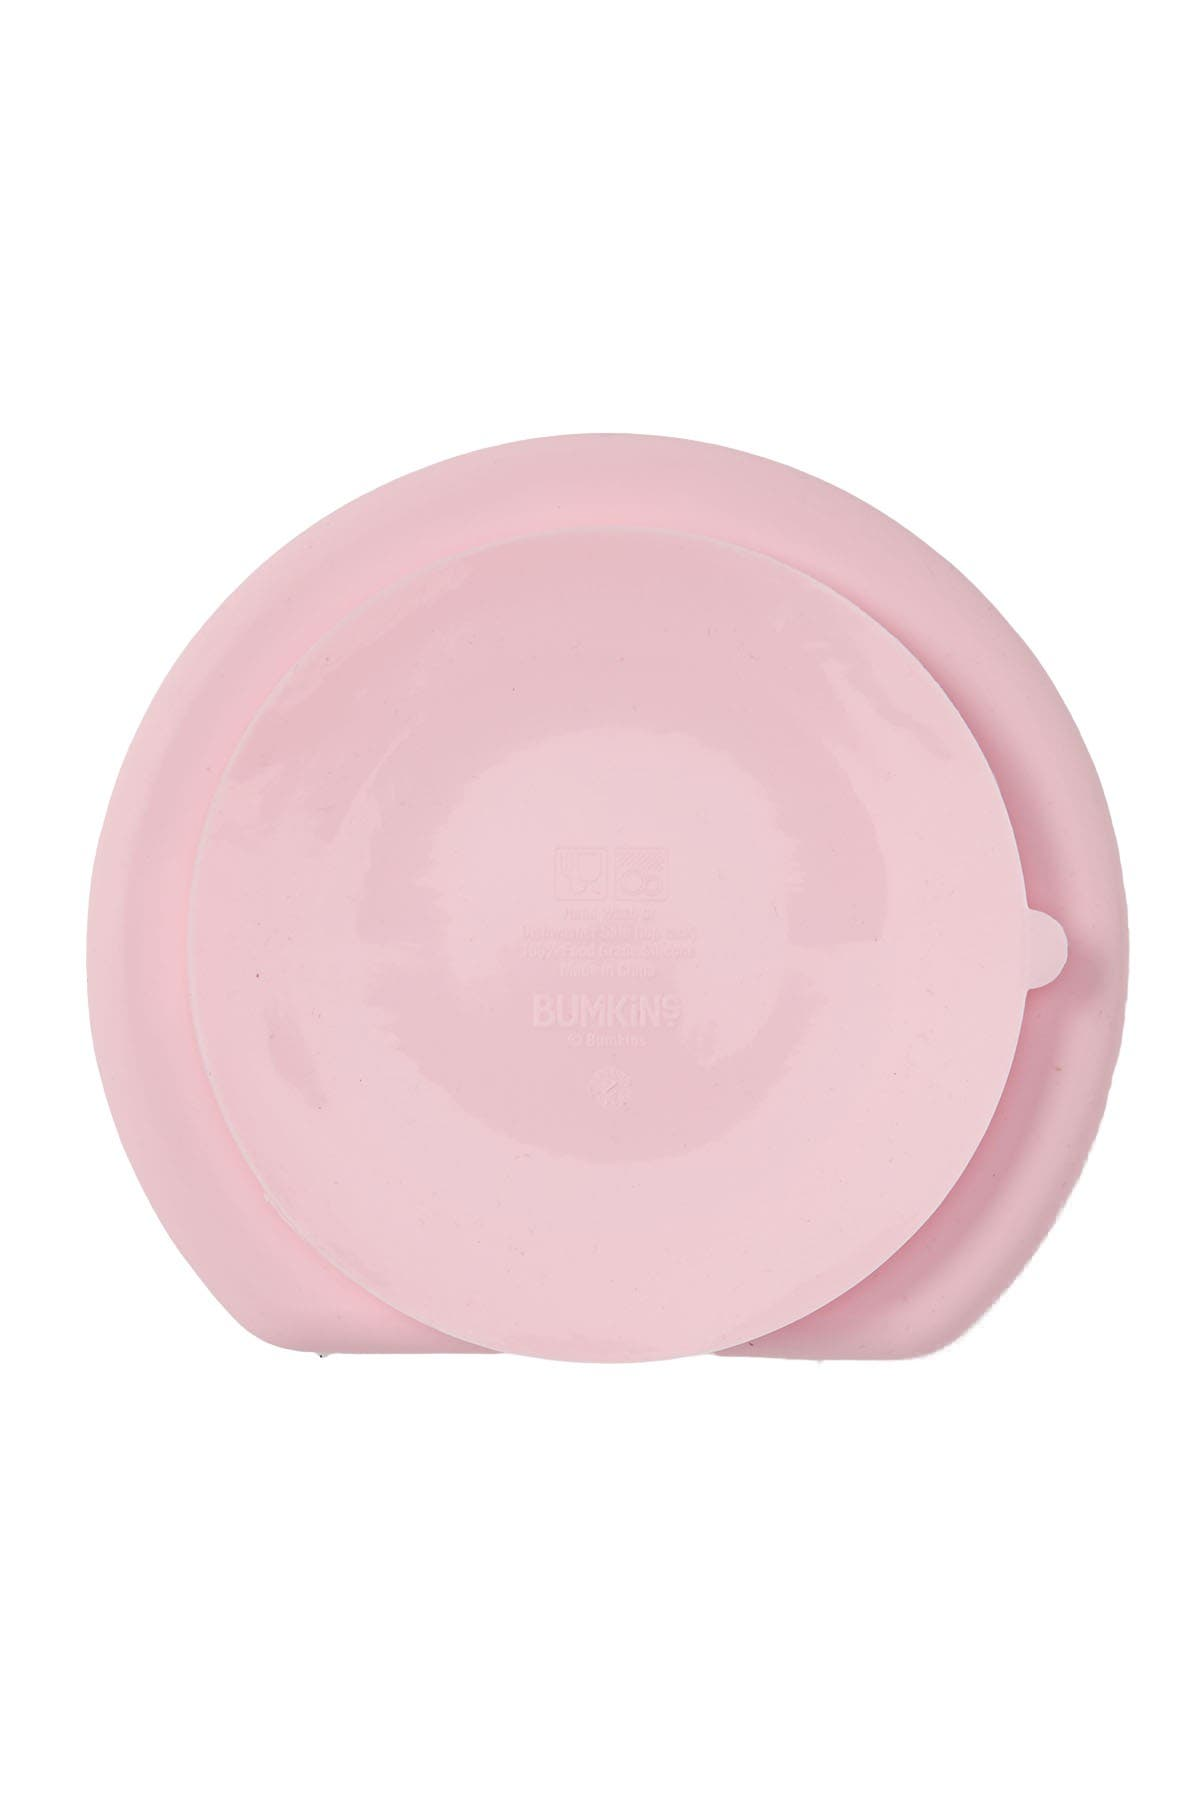 Image of Bumkins Silicone Grip Dish